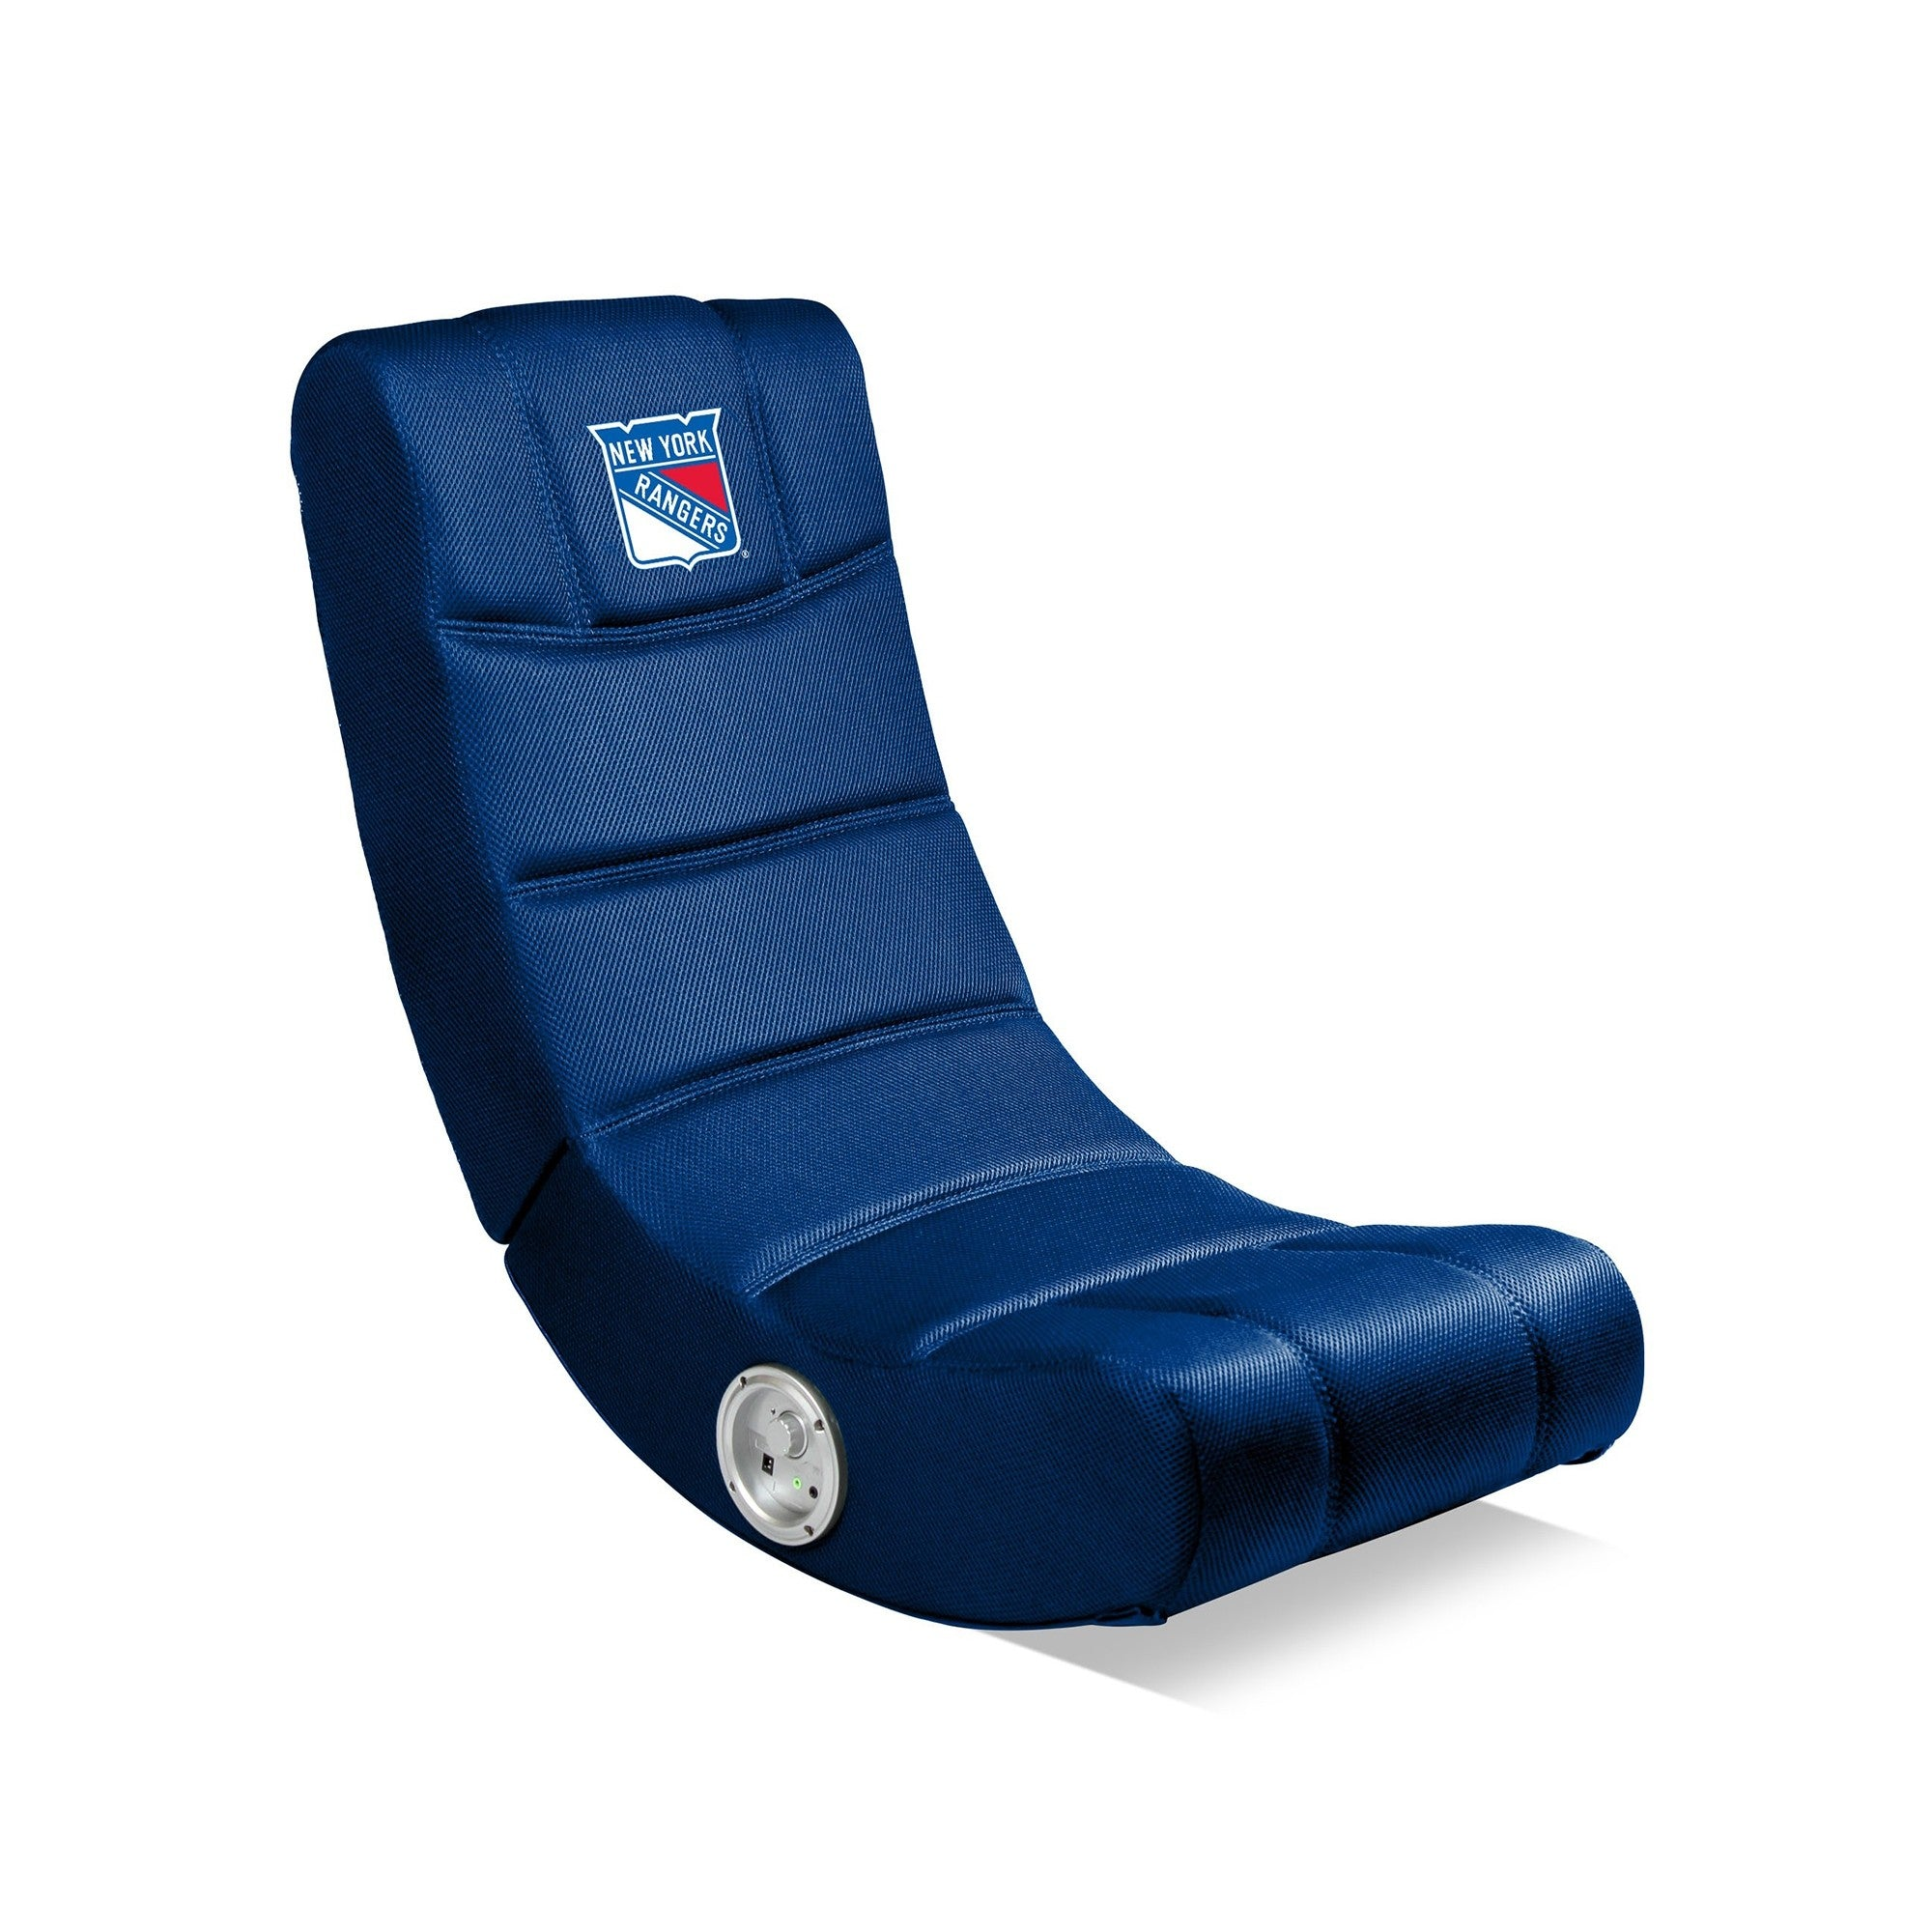 new york rangers bluetooth rocker gaming chair racer gaming chairs